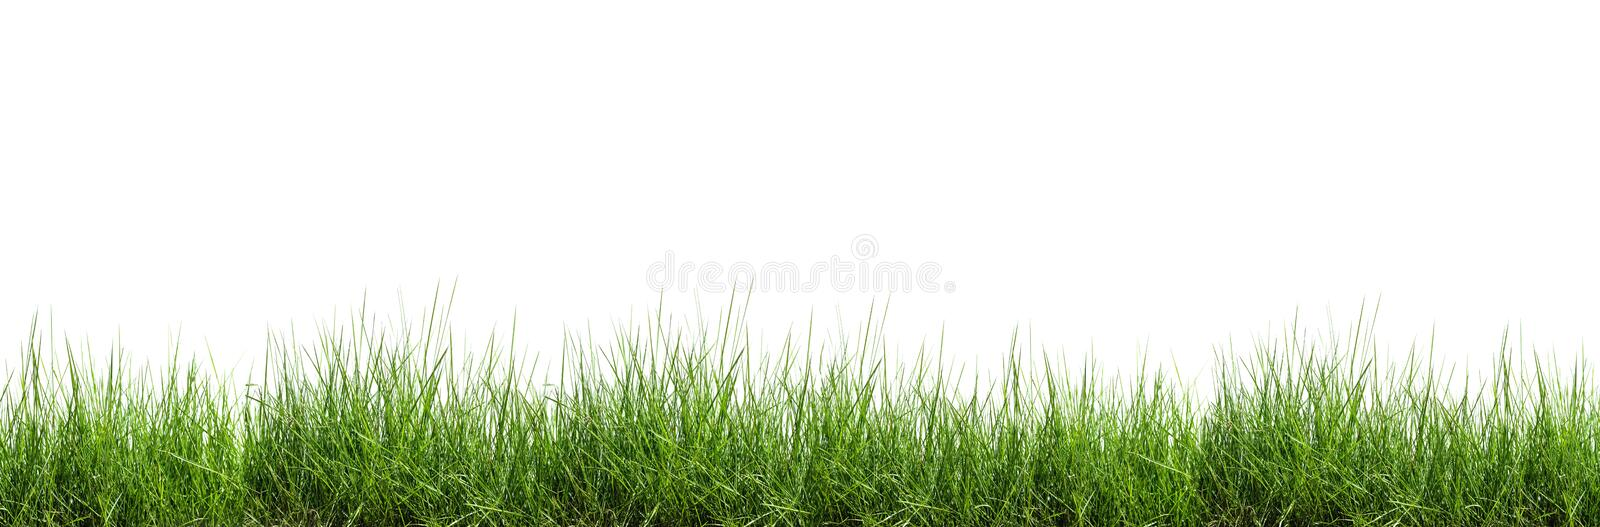 Grass isolated on white background royalty free stock photography